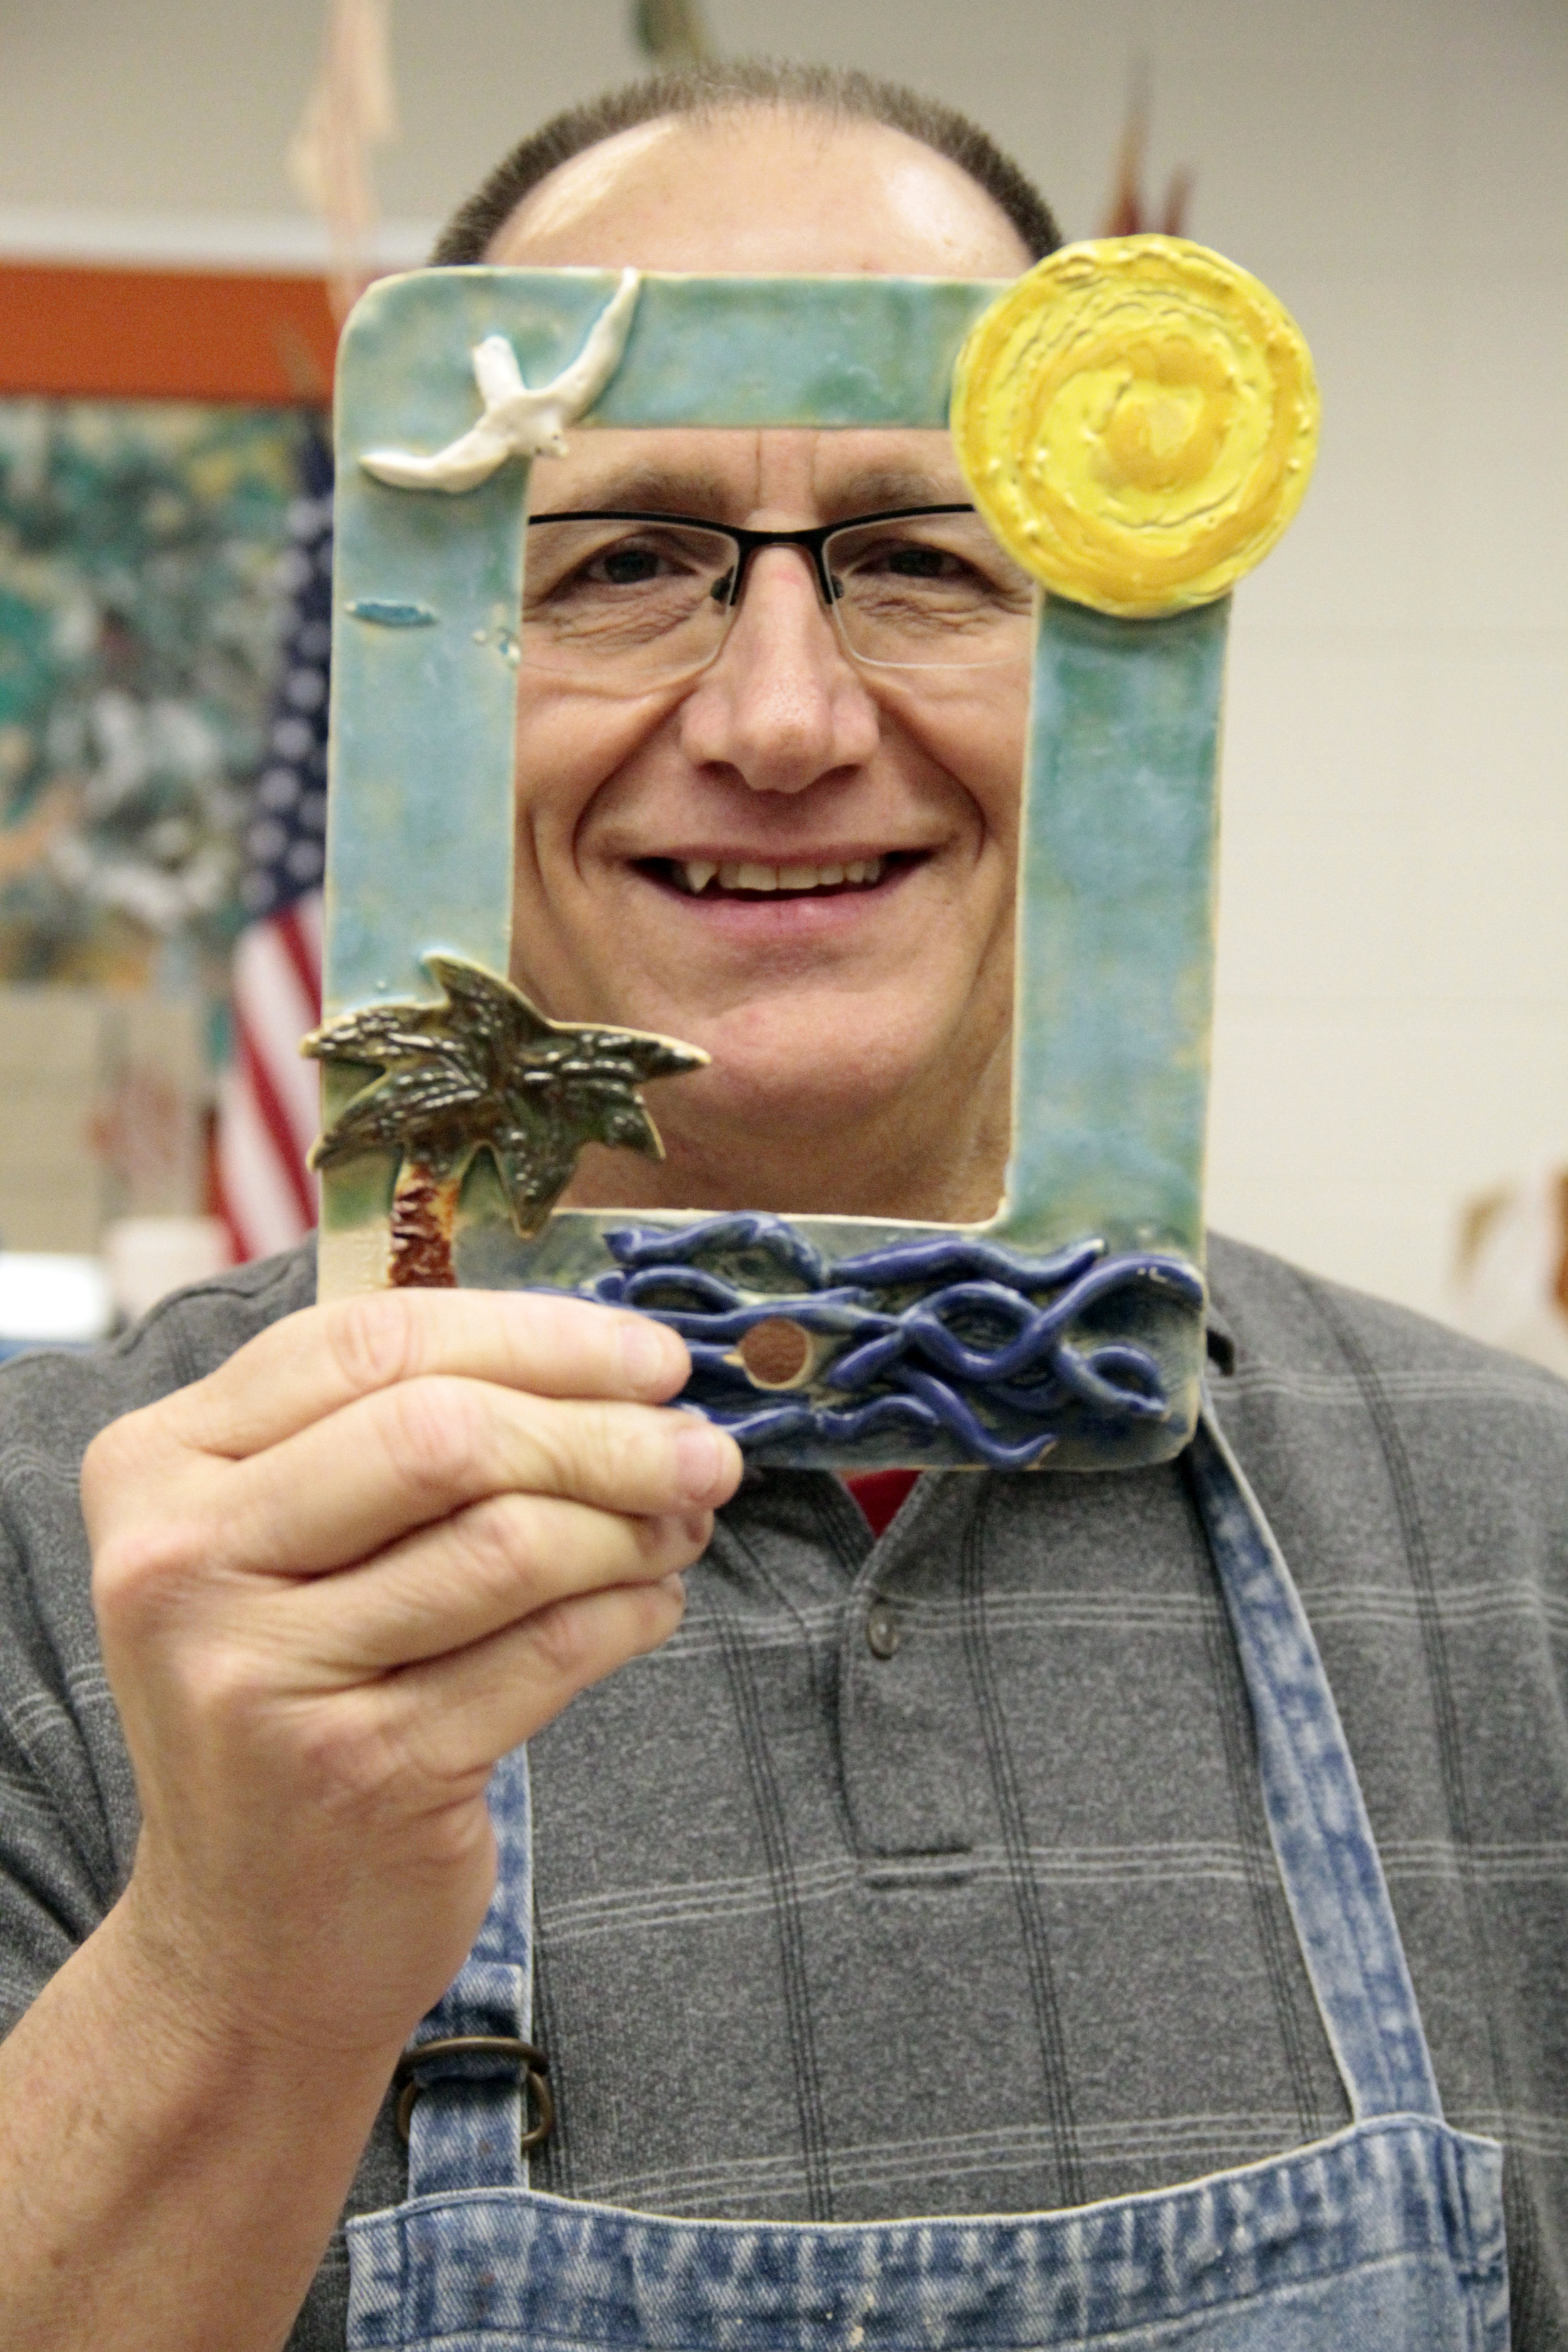 Joe Power is an art teacher at the Northwest Indiana Special Education Cooperative in Crown Point, Indiana.